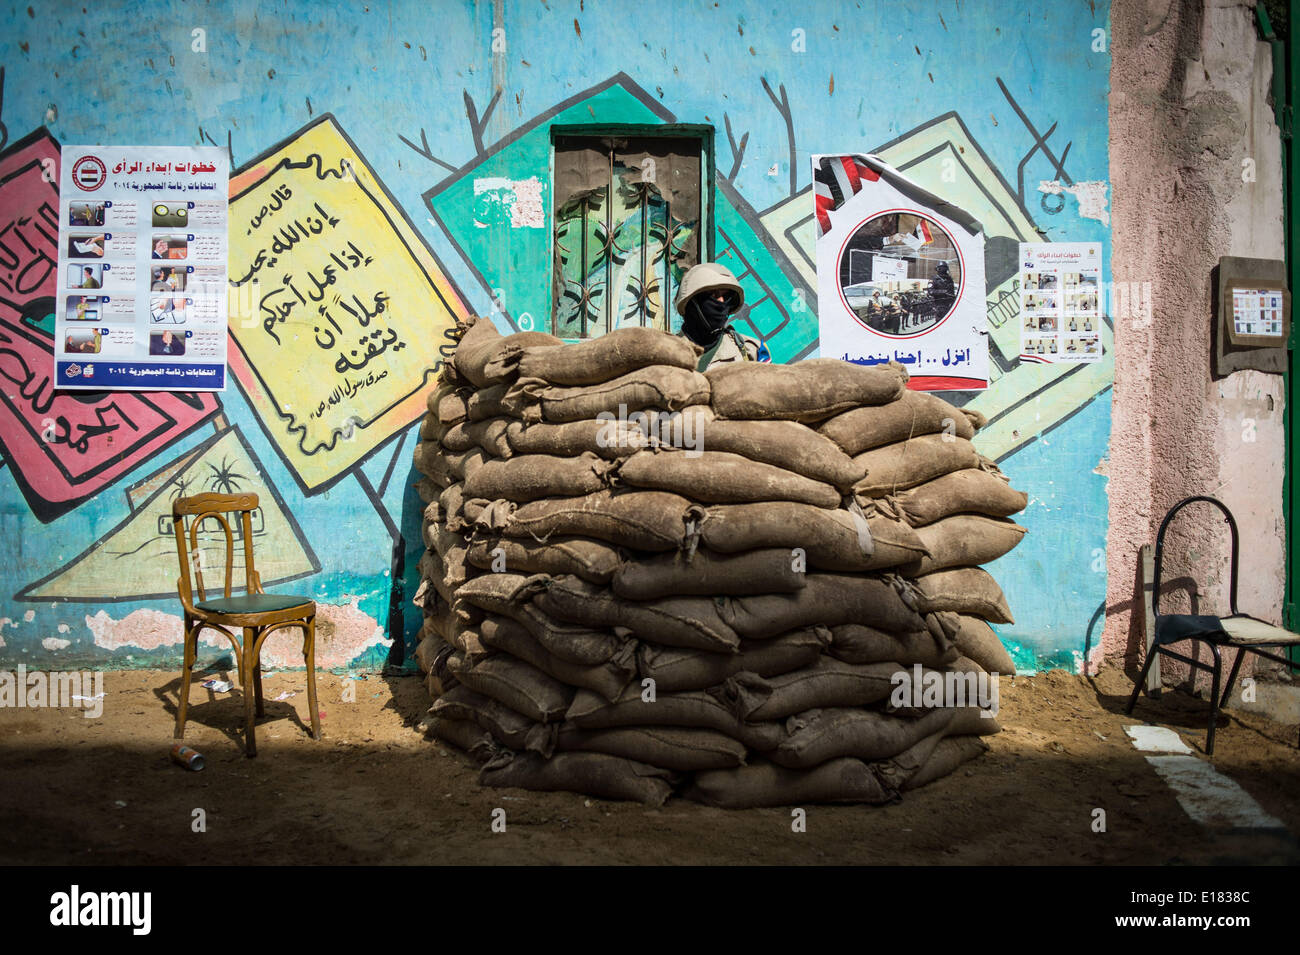 Cairo, Egypt. 26th May, 2014. An Egyptian army solider guards outside a polling station in Cairo, Egypt, on May 26, 2014. Egypt held presidential election on Monday. Credit:  Pan Chaoyue/Xinhua/Alamy Live News - Stock Image